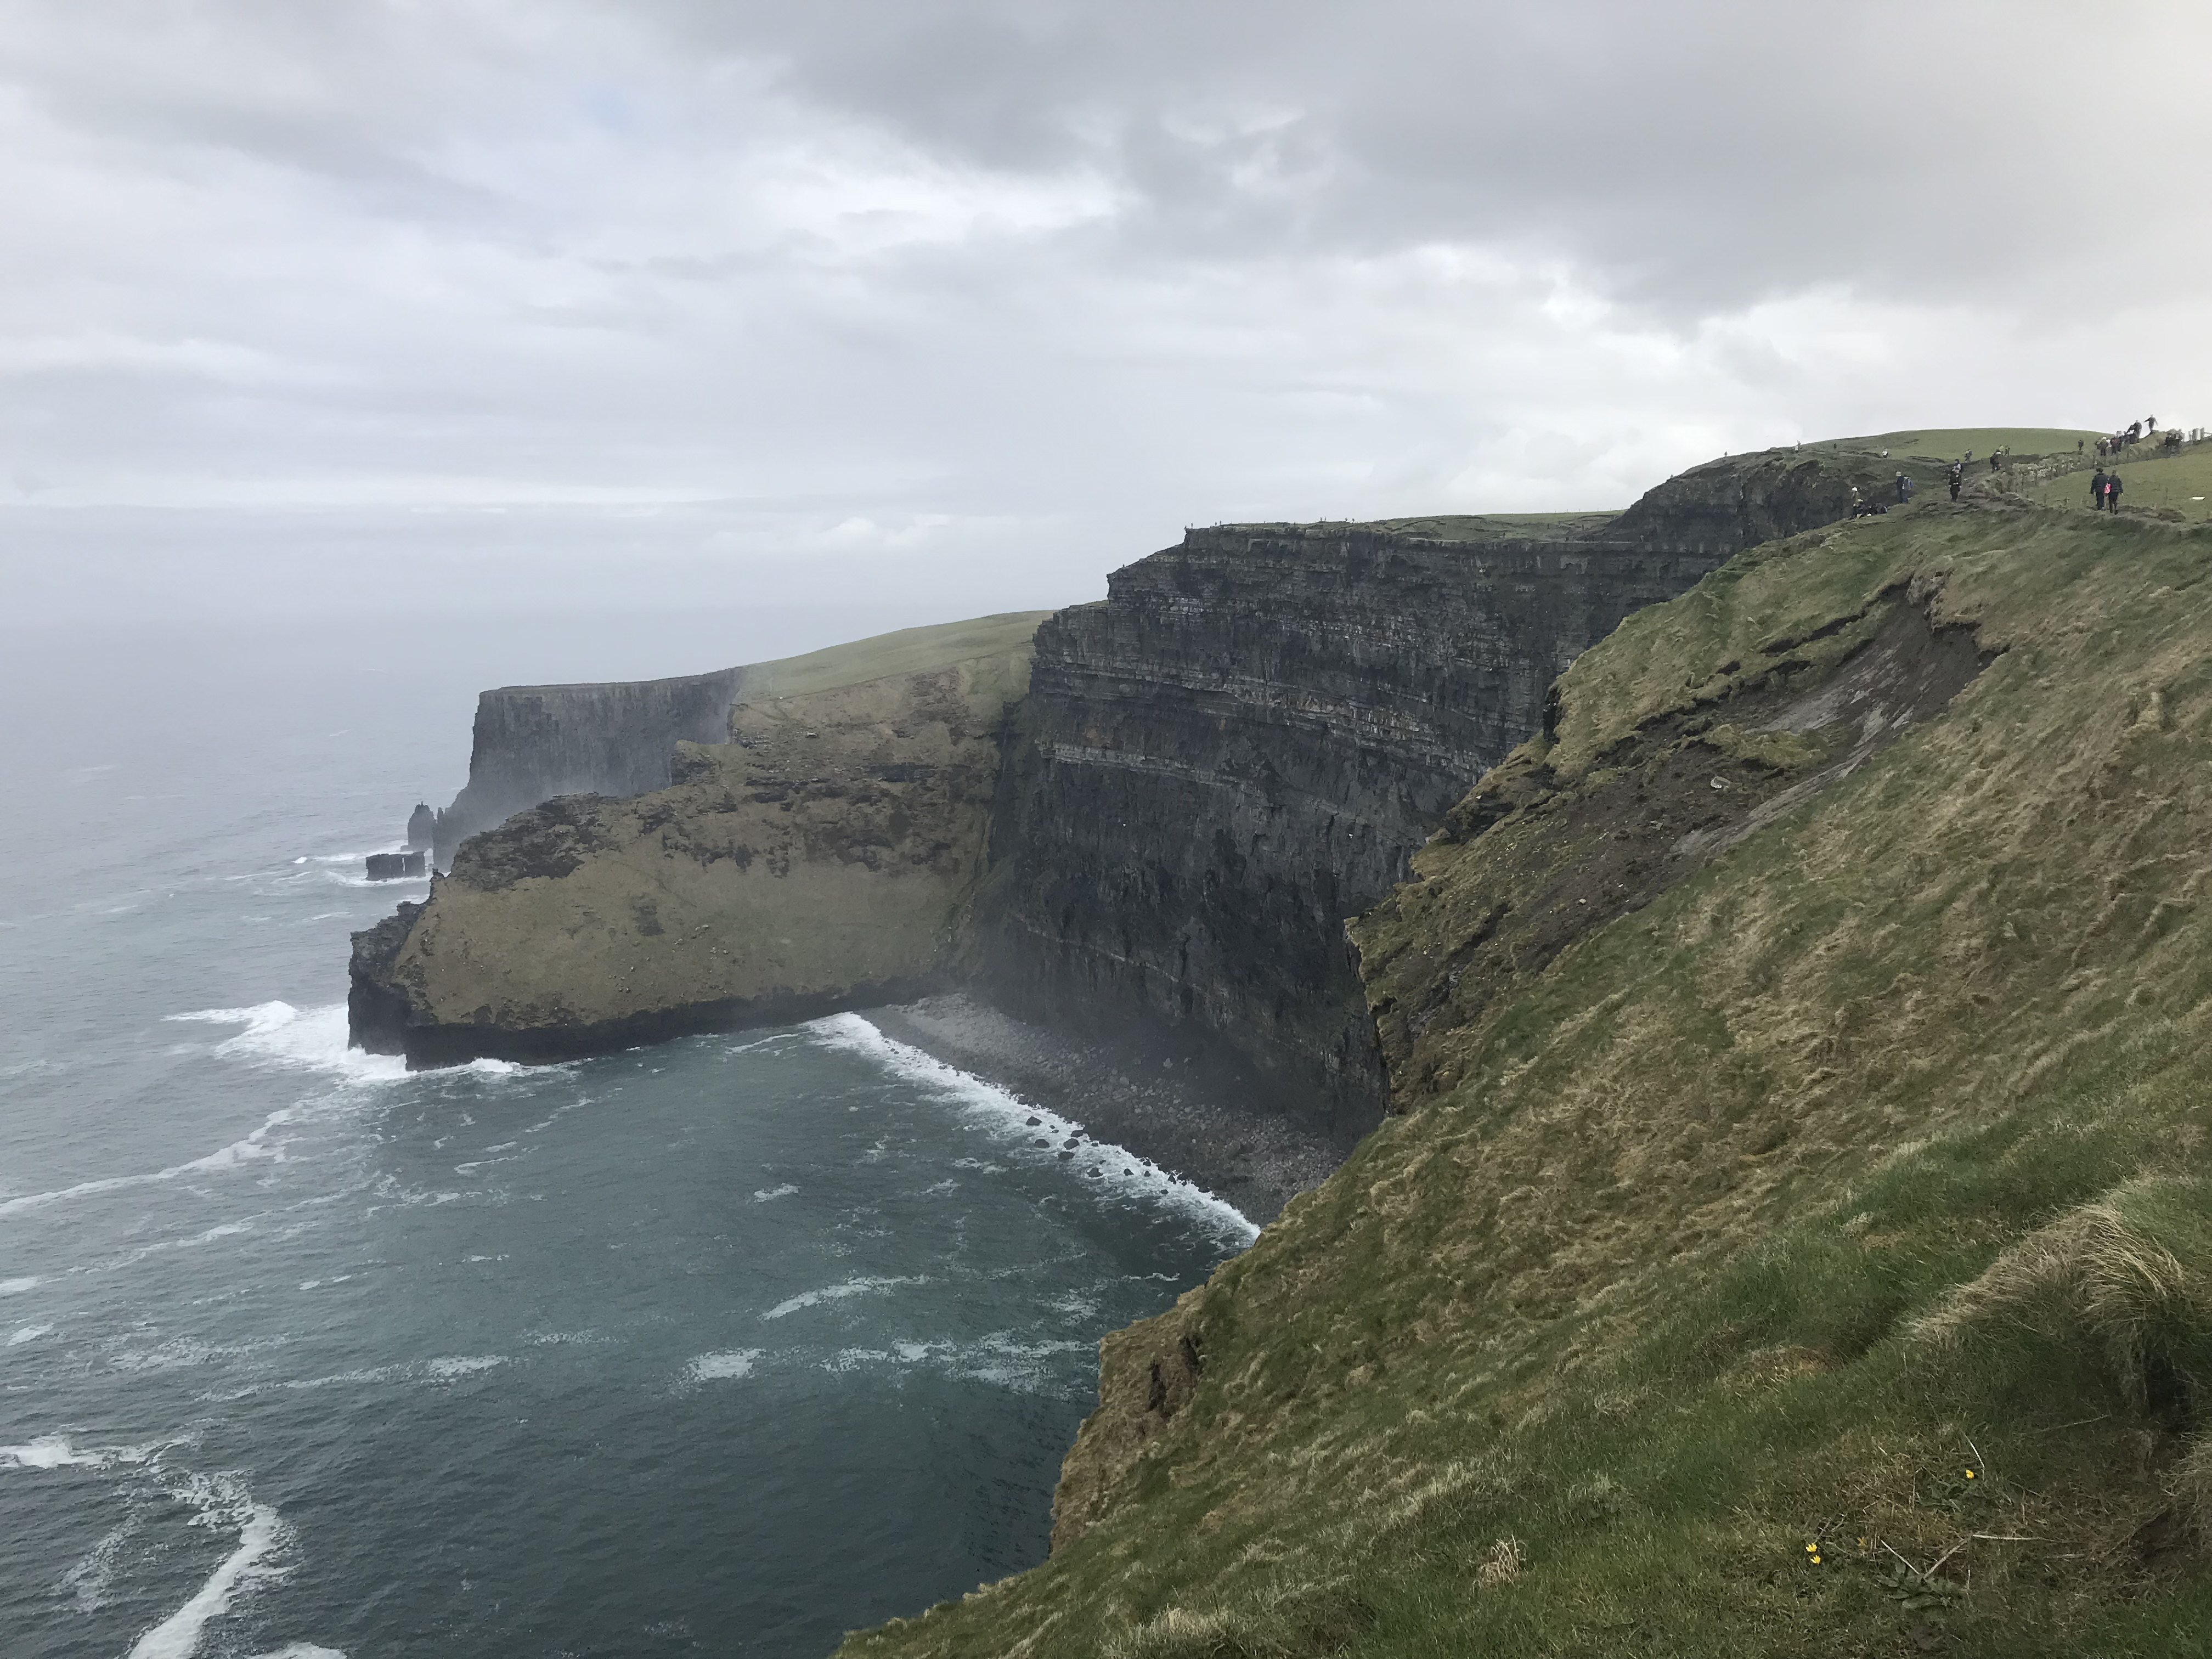 CAPAStudyAbroad_Dublin_Spring2018_From Brandon Mooney - Cliffs of Moher_3